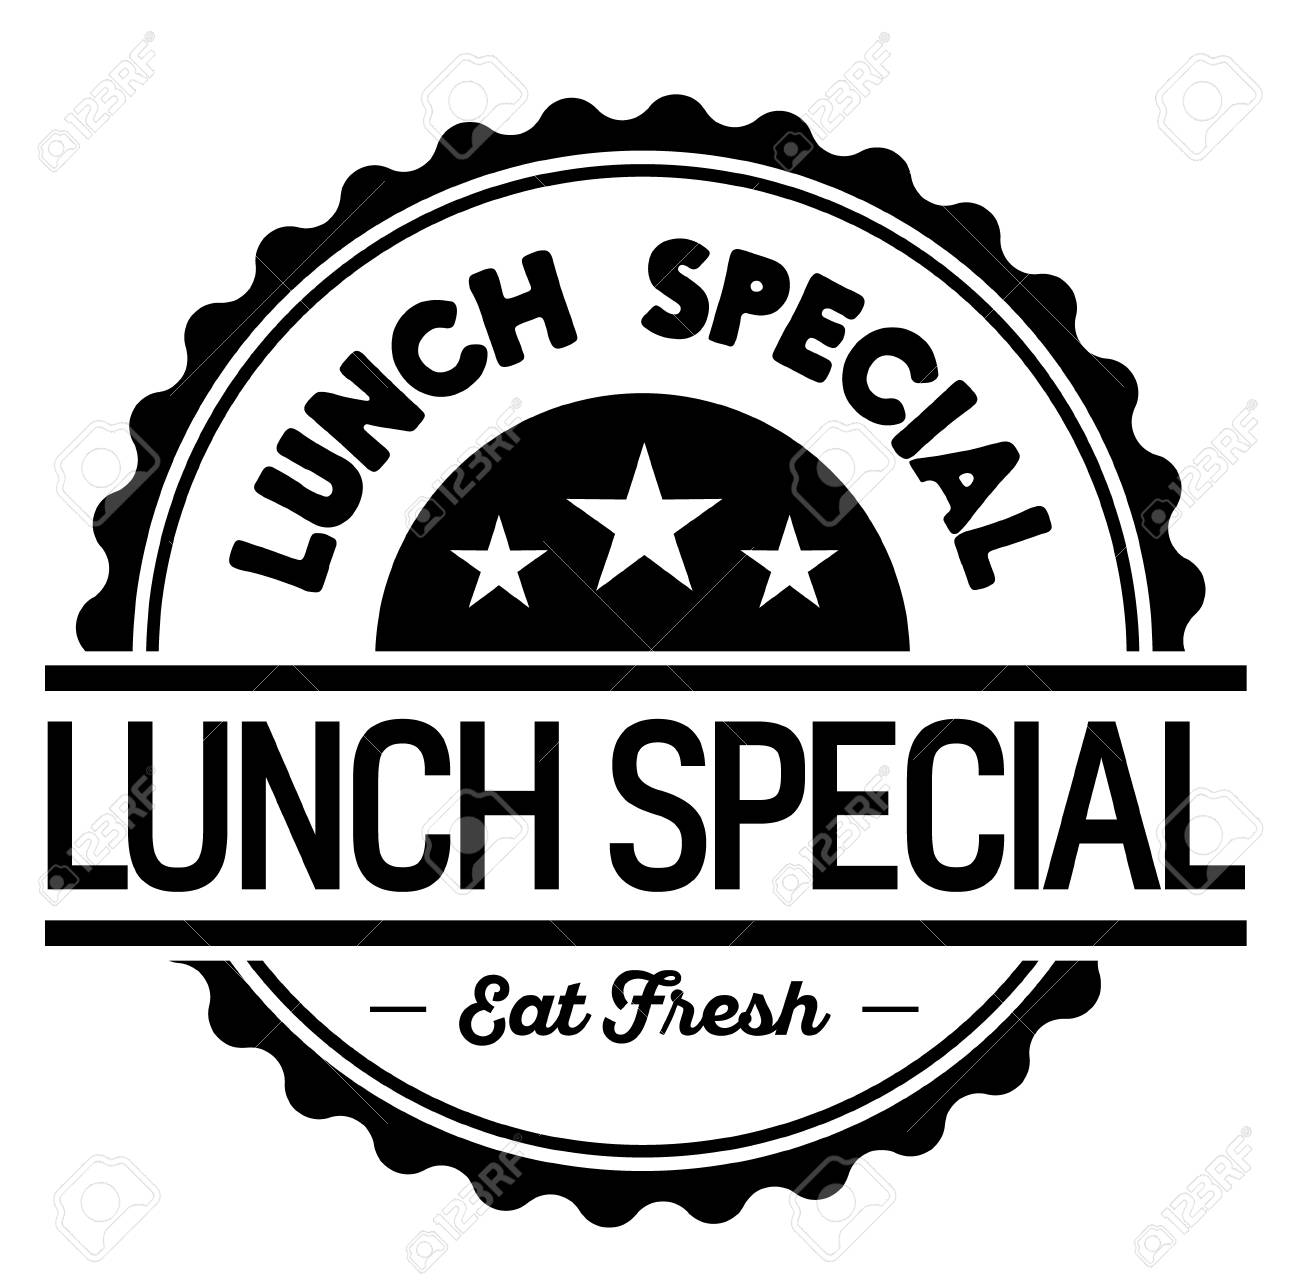 lunch special label on white background - 116204459